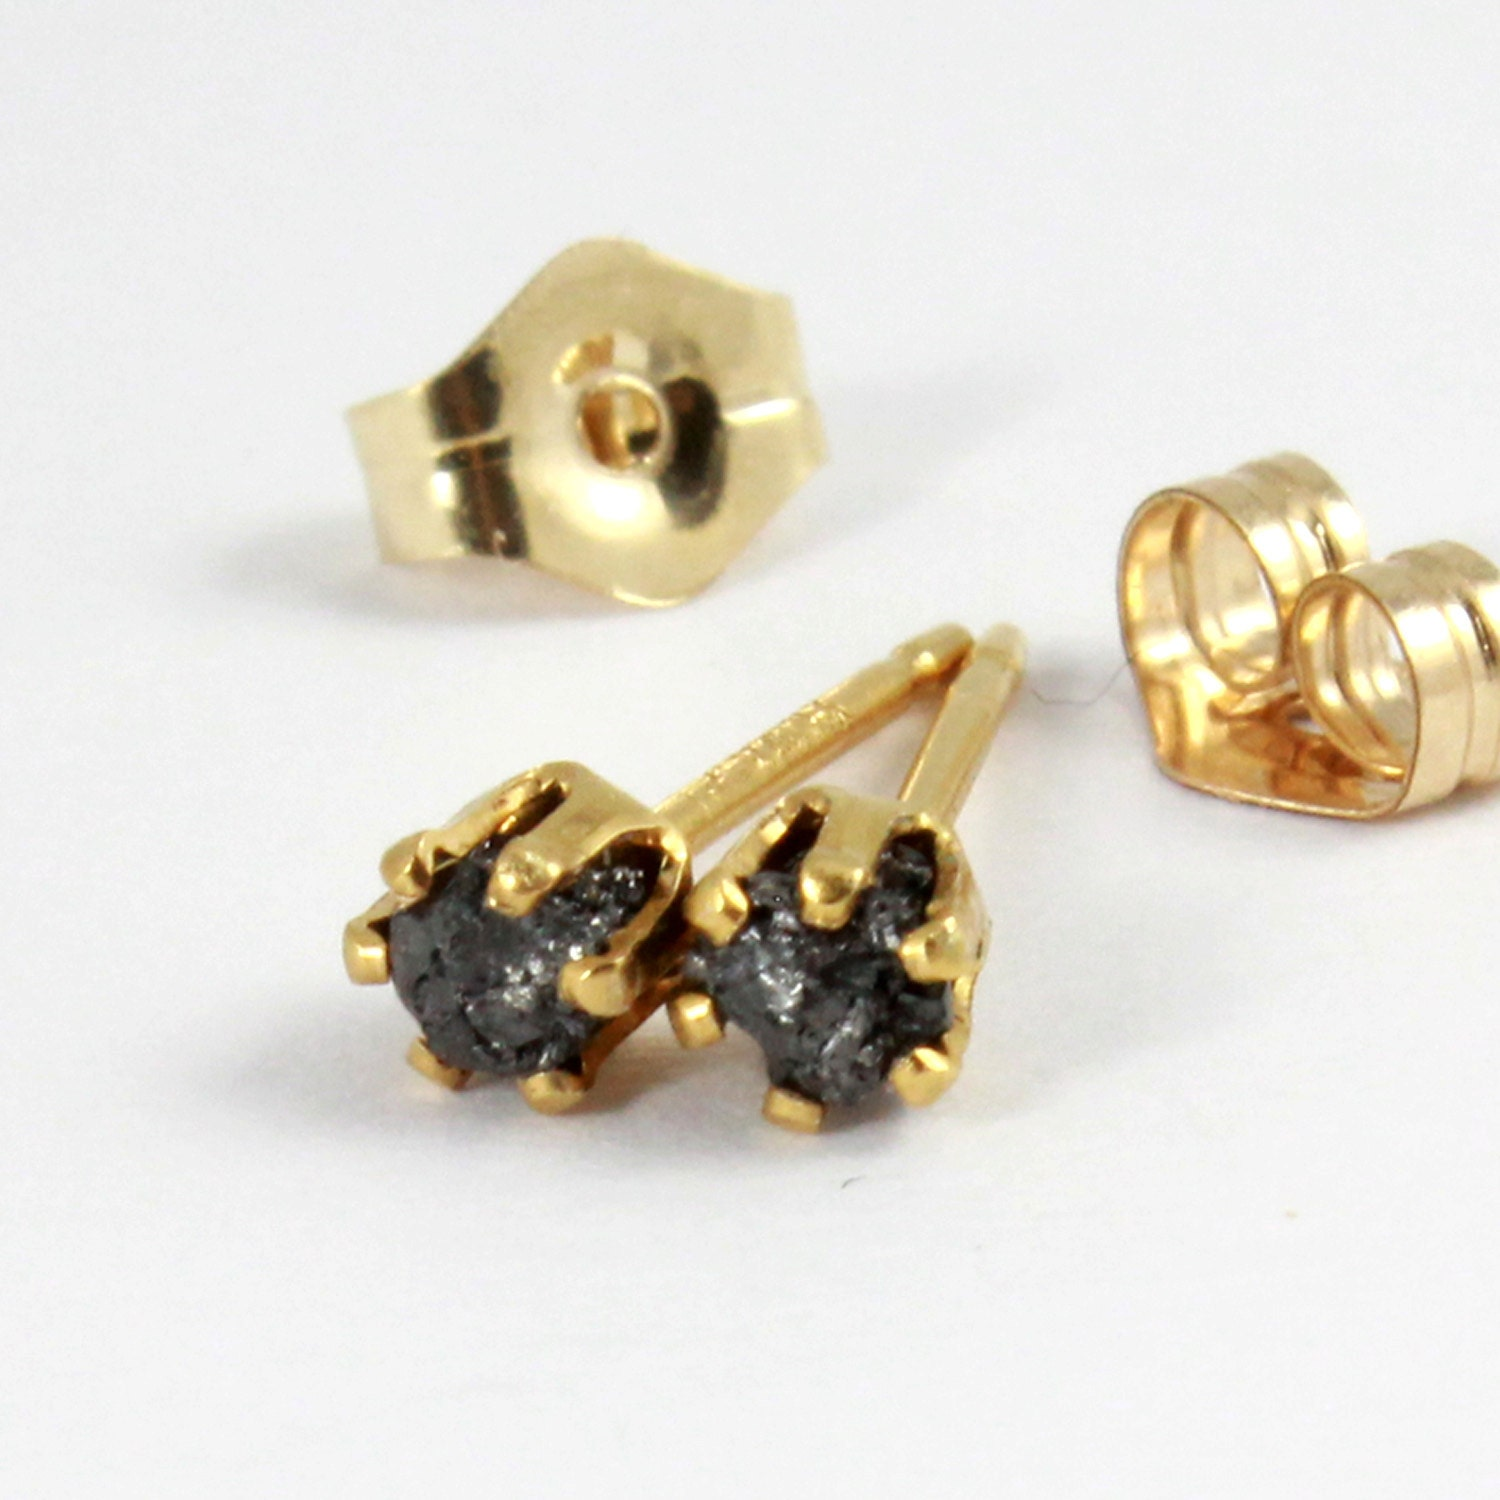 tiny post earrings 2mm 14k gold filled studs